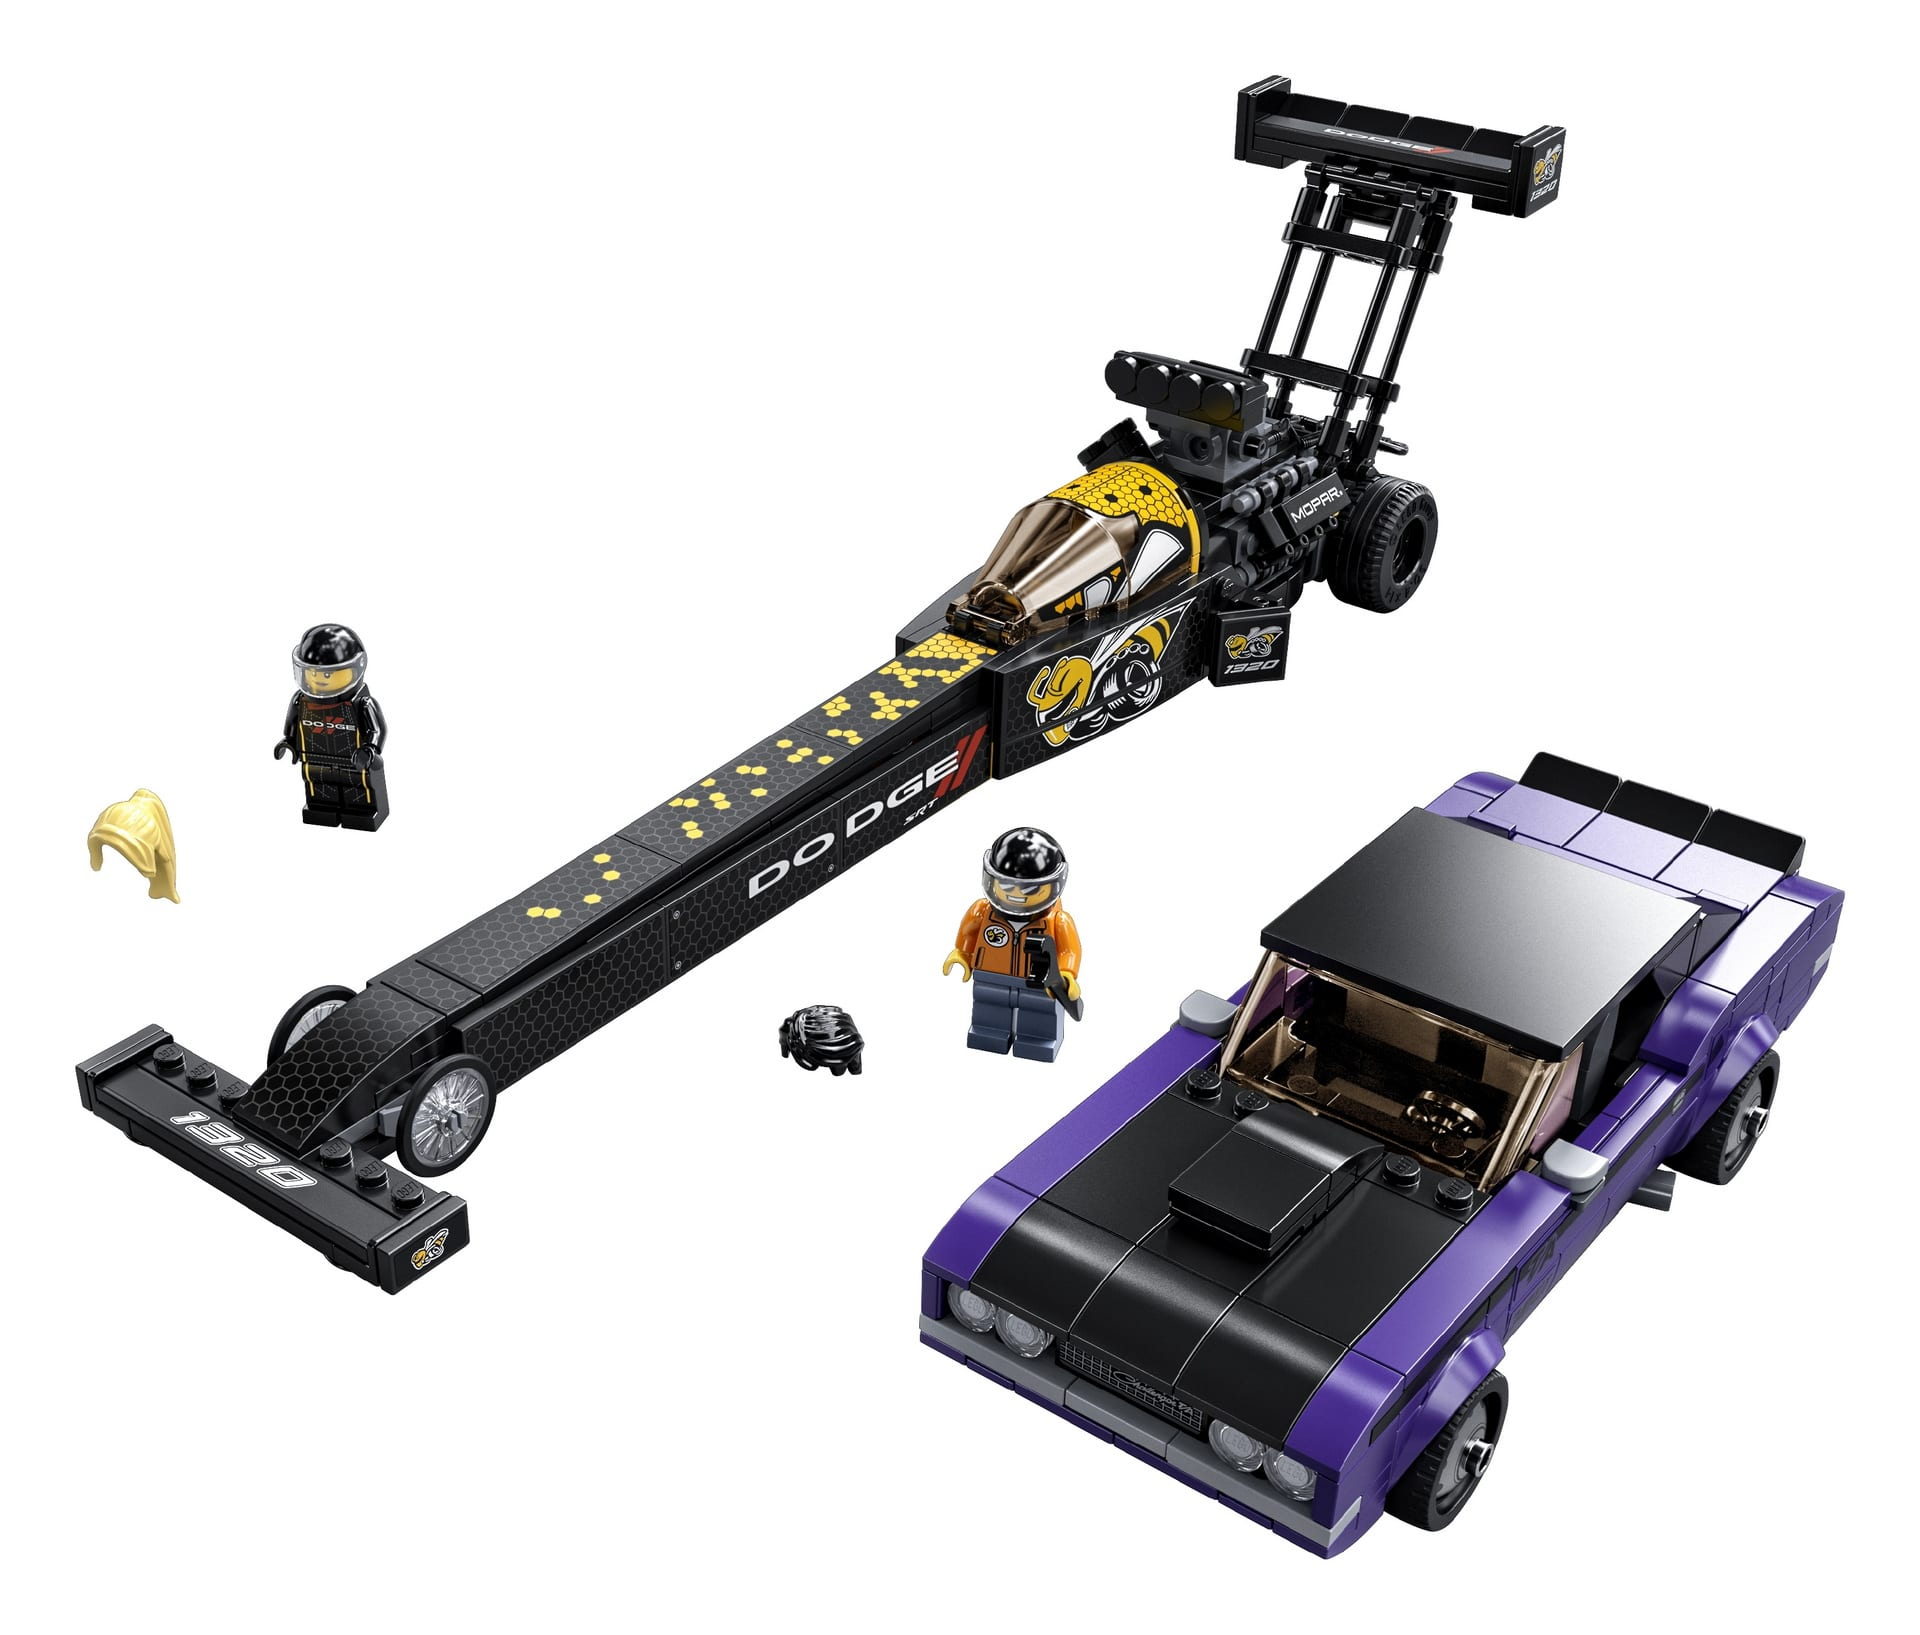 LEGO's new Speed Champions sets include Ford, Toyota, and Chevrolet 22